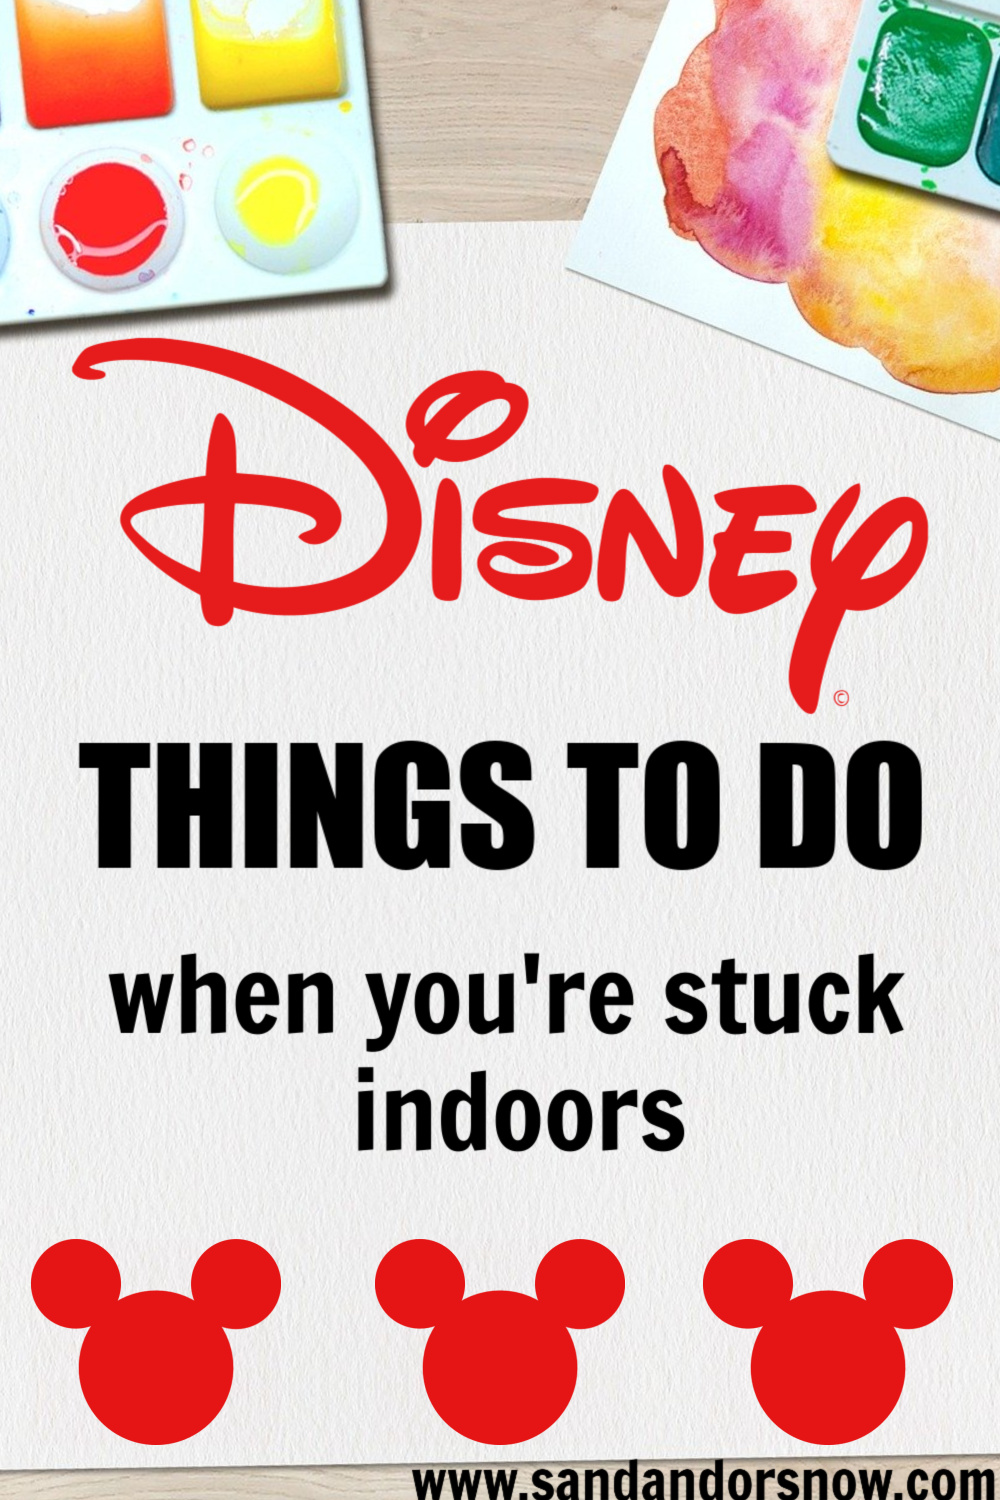 Disney things to do when you're stuck indoors